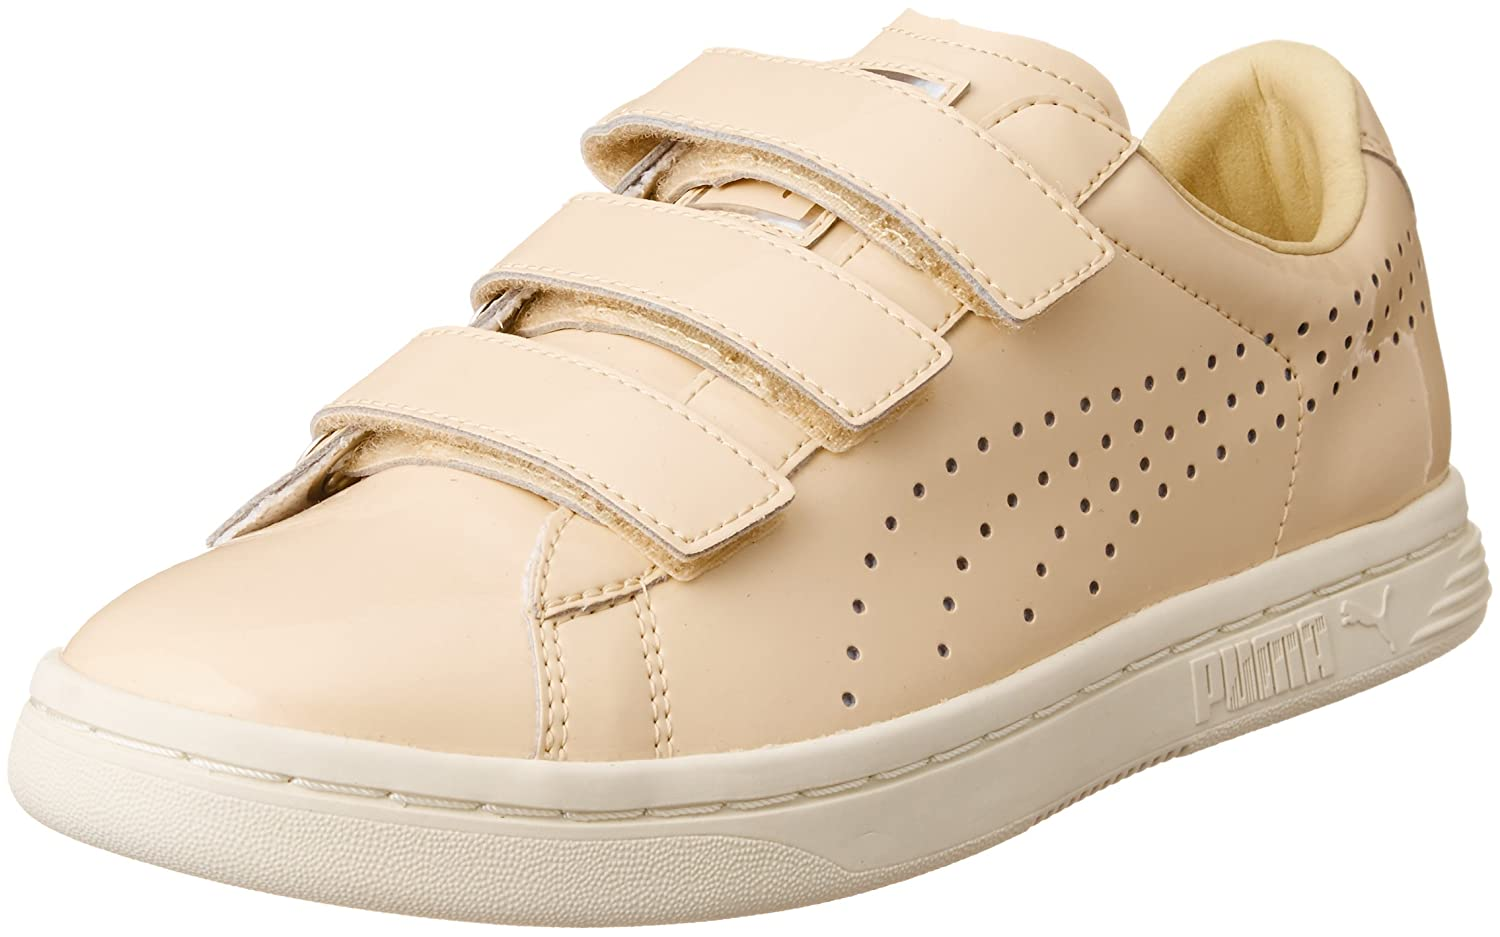 official photos ffb65 edb05 Puma Court Star Velcro Nude Trainers, Natural Vachetta-WHI ...